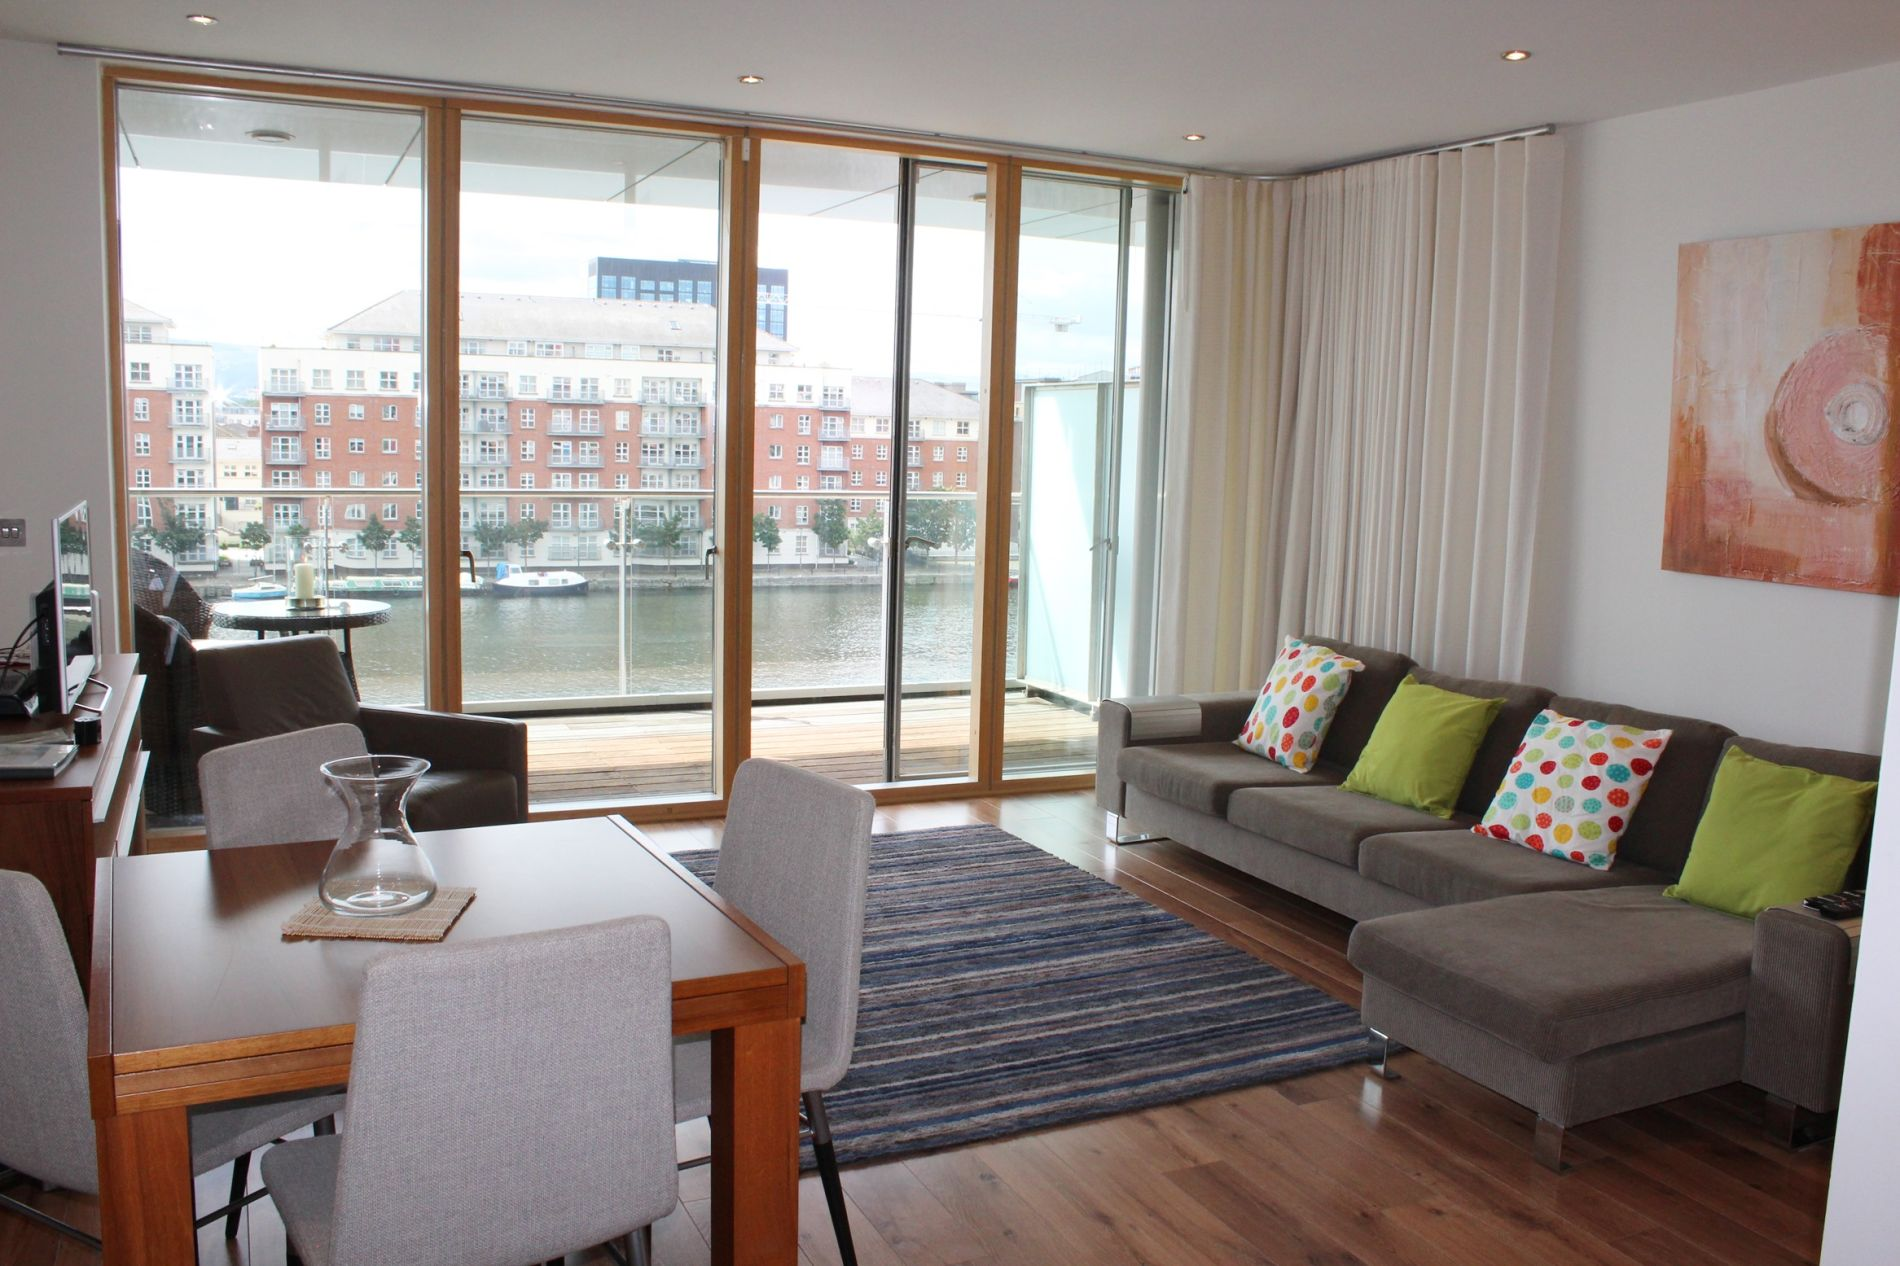 Serviced apartment in Dublin with great water views